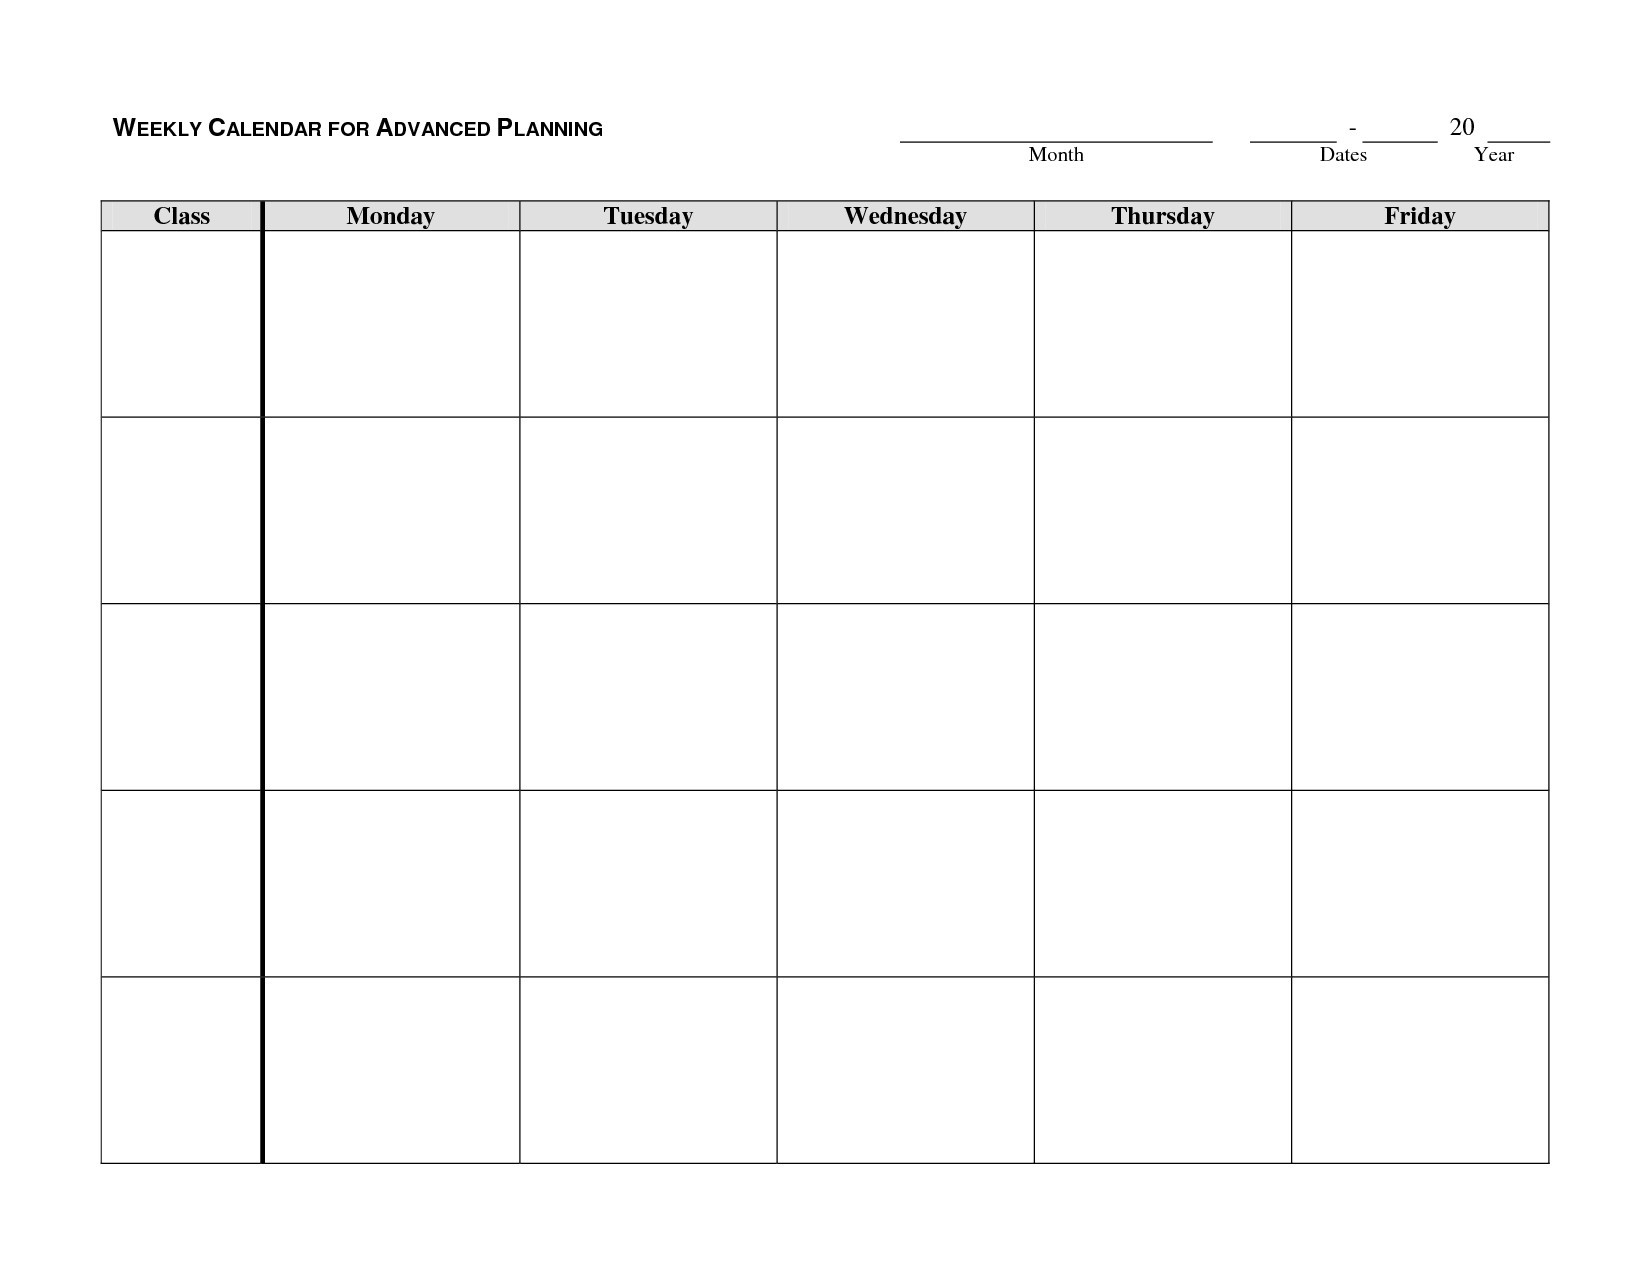 Monday Thru Friday Calendar Template | Printable Calendar Templates 2019 pertaining to Monday Thru Friday Calendar Template